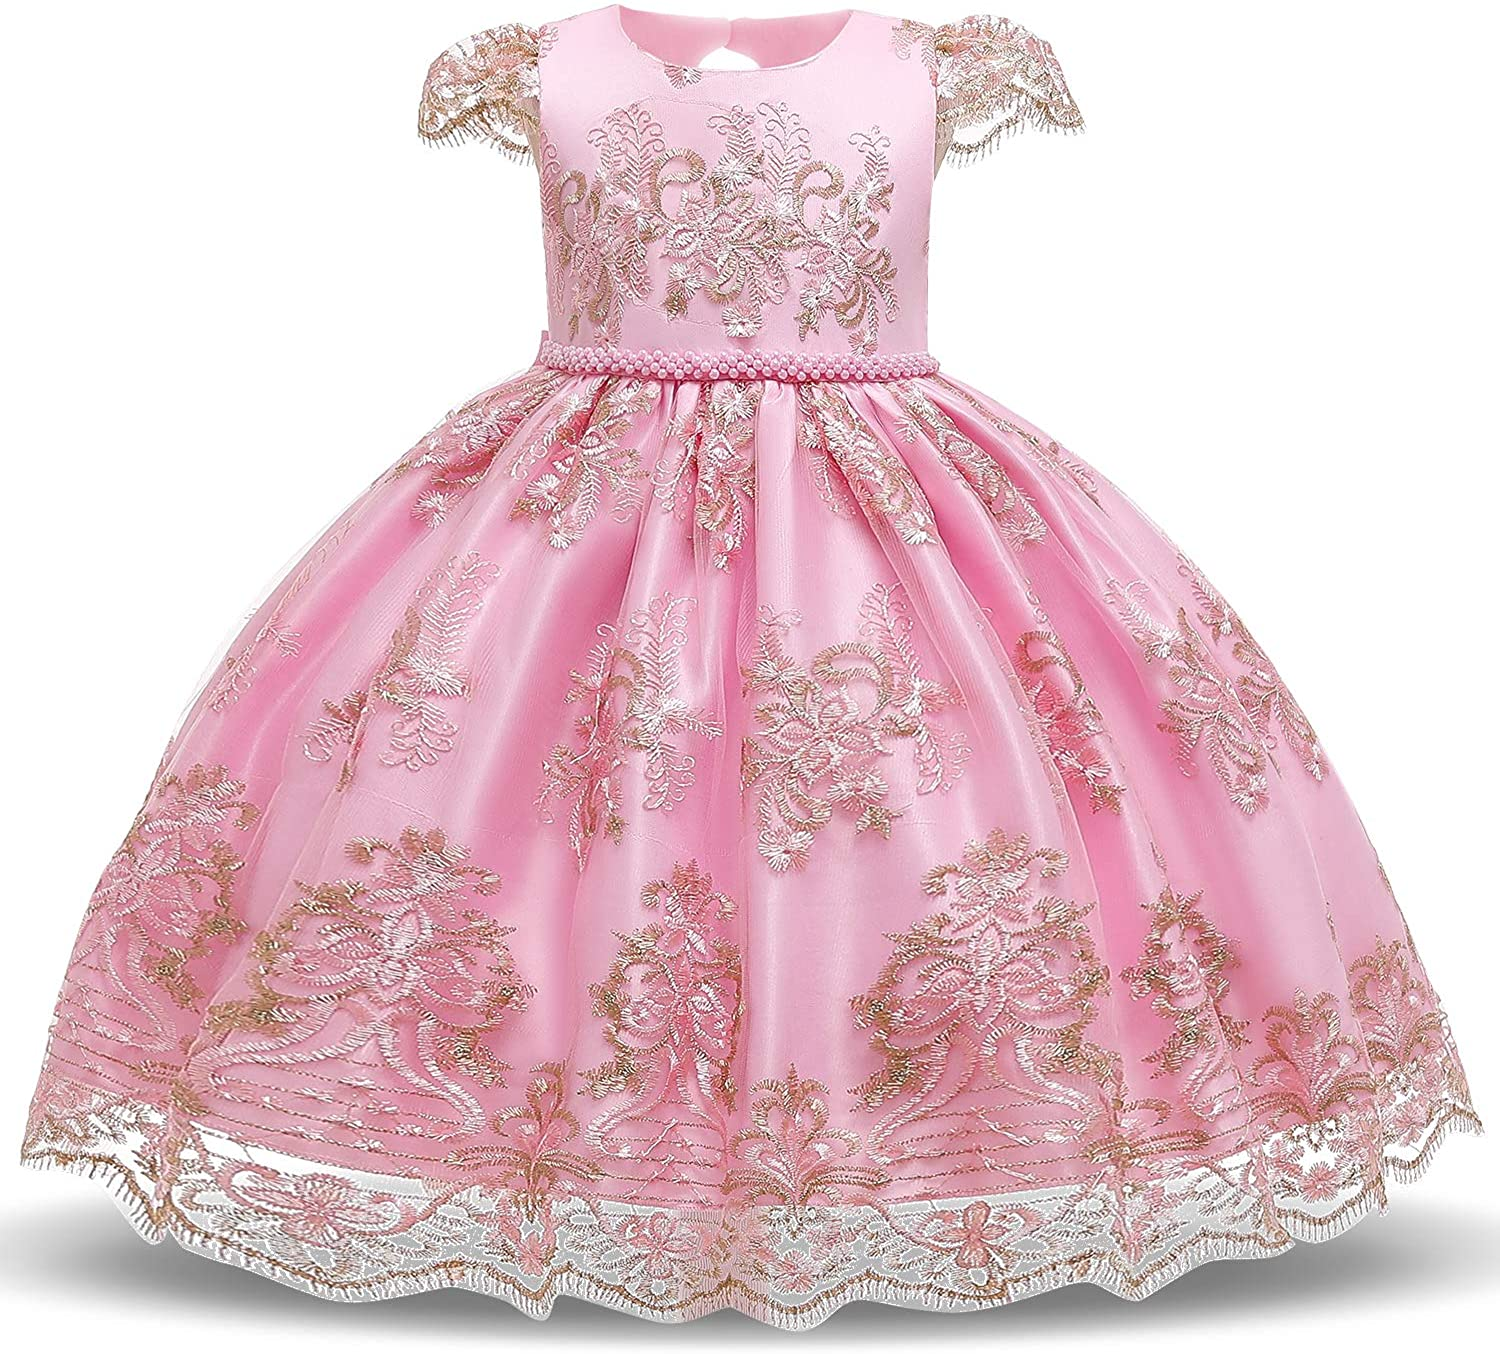 TTYAOVO Girls Embroidered Lace Sleeveless Tulle Flower Princess Party Dresses Back Bow